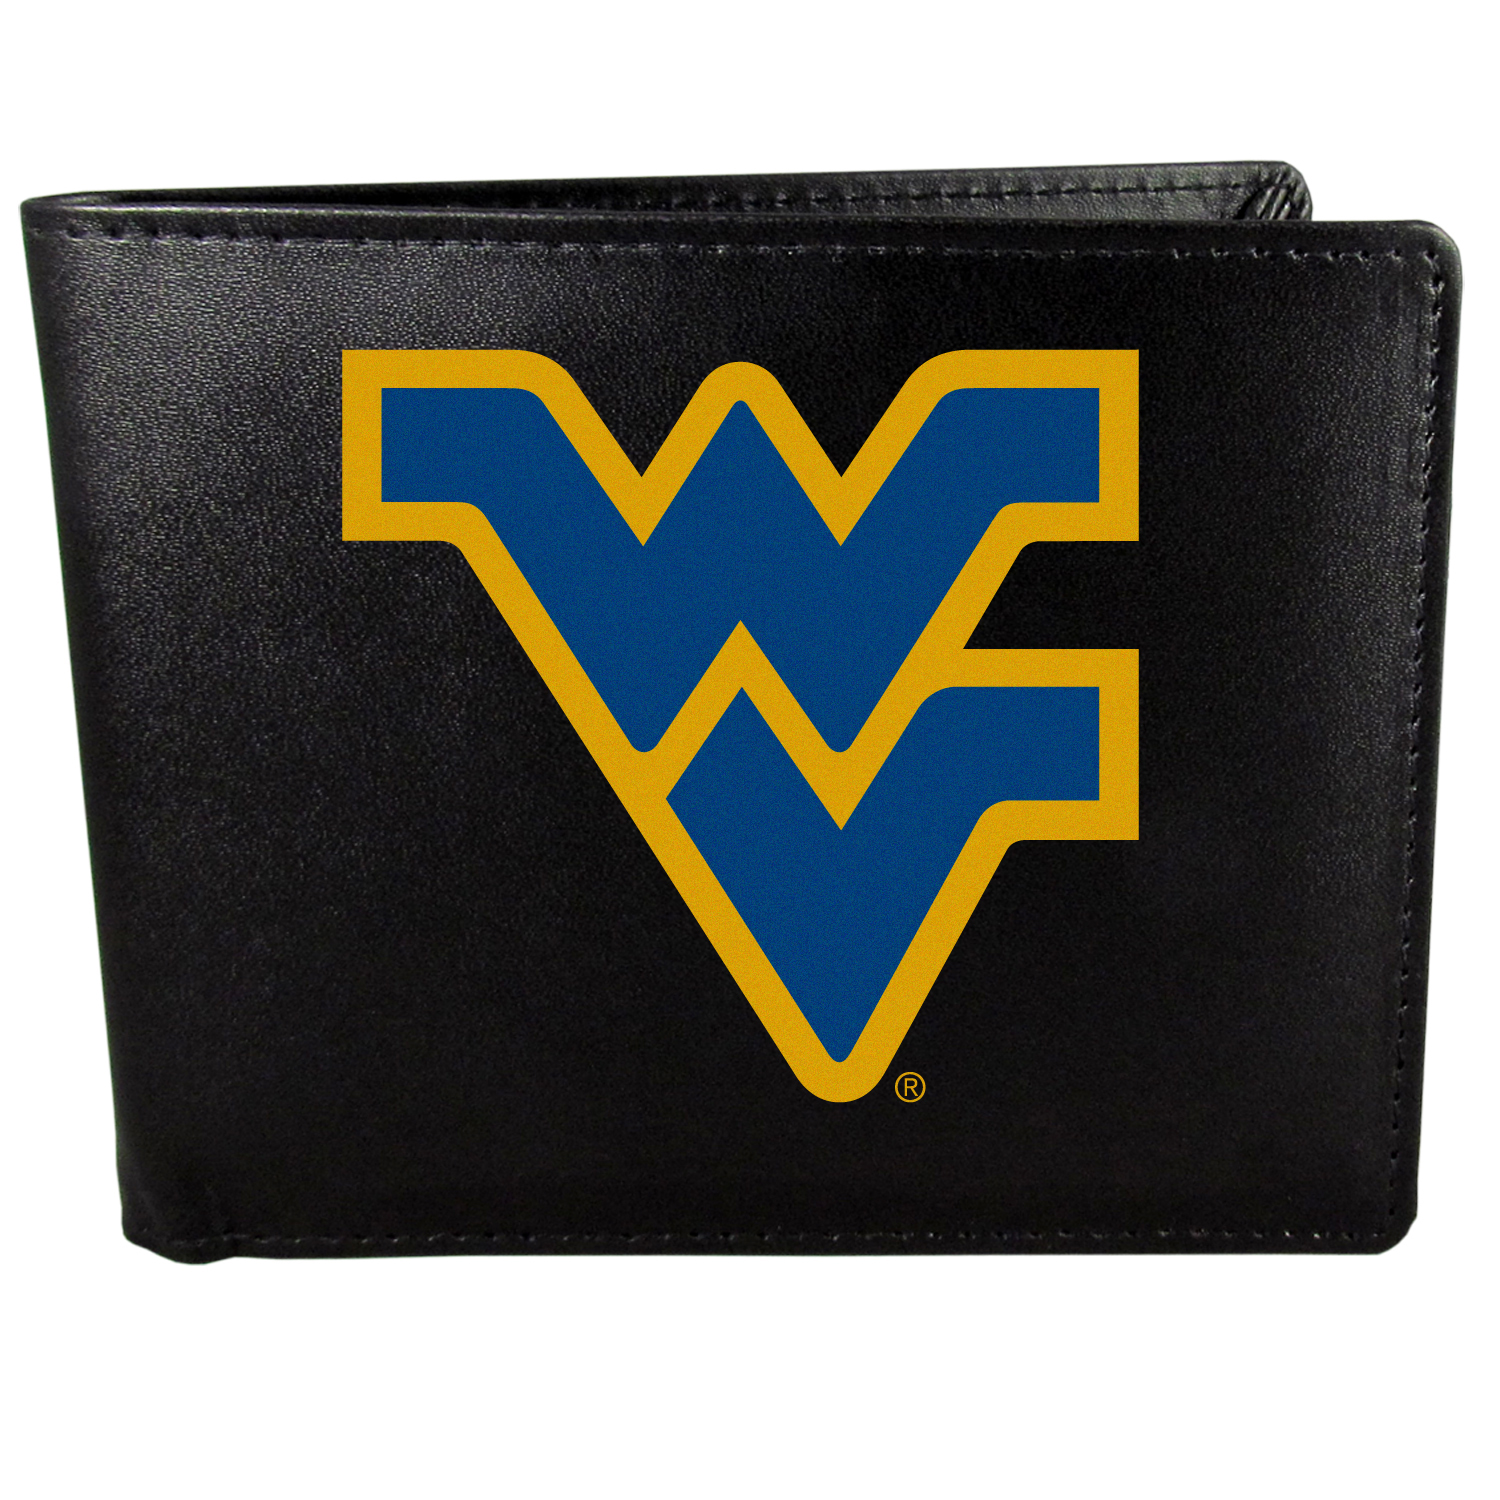 W. Virginia Mountaineers Bi-fold Wallet Large Logo - Sports fans do not have to sacrifice style with this classic bi-fold wallet that sports the W. Virginia Mountaineers extra large logo. This men's fashion accessory has a leather grain look and expert craftmanship for a quality wallet at a great price. The wallet features inner credit card slots, windowed ID slot and a large billfold pocket. The front of the wallet features a printed team logo.